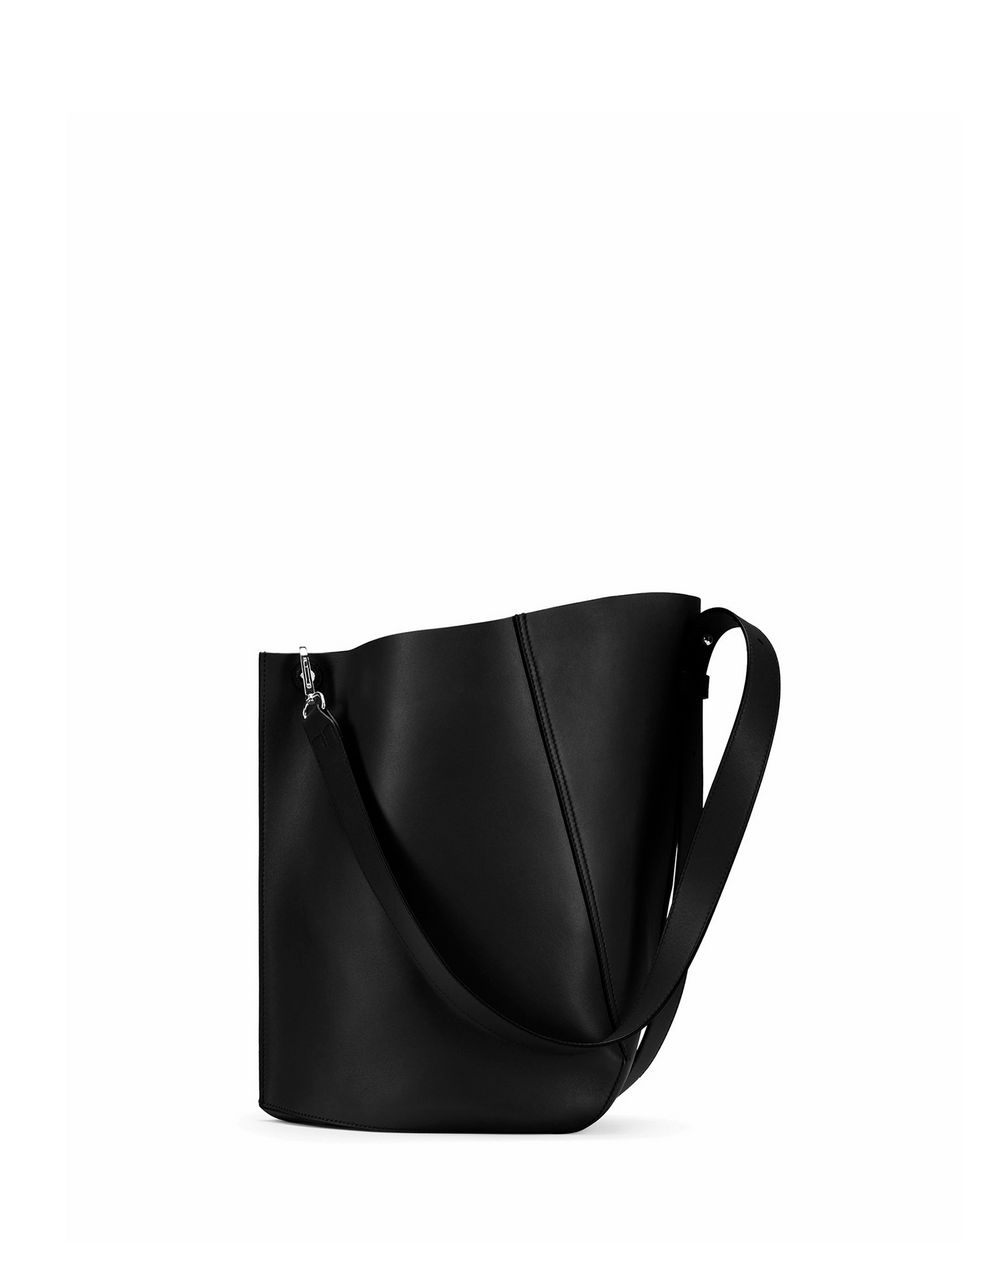 HOOK BAG SMALL - Lanvin